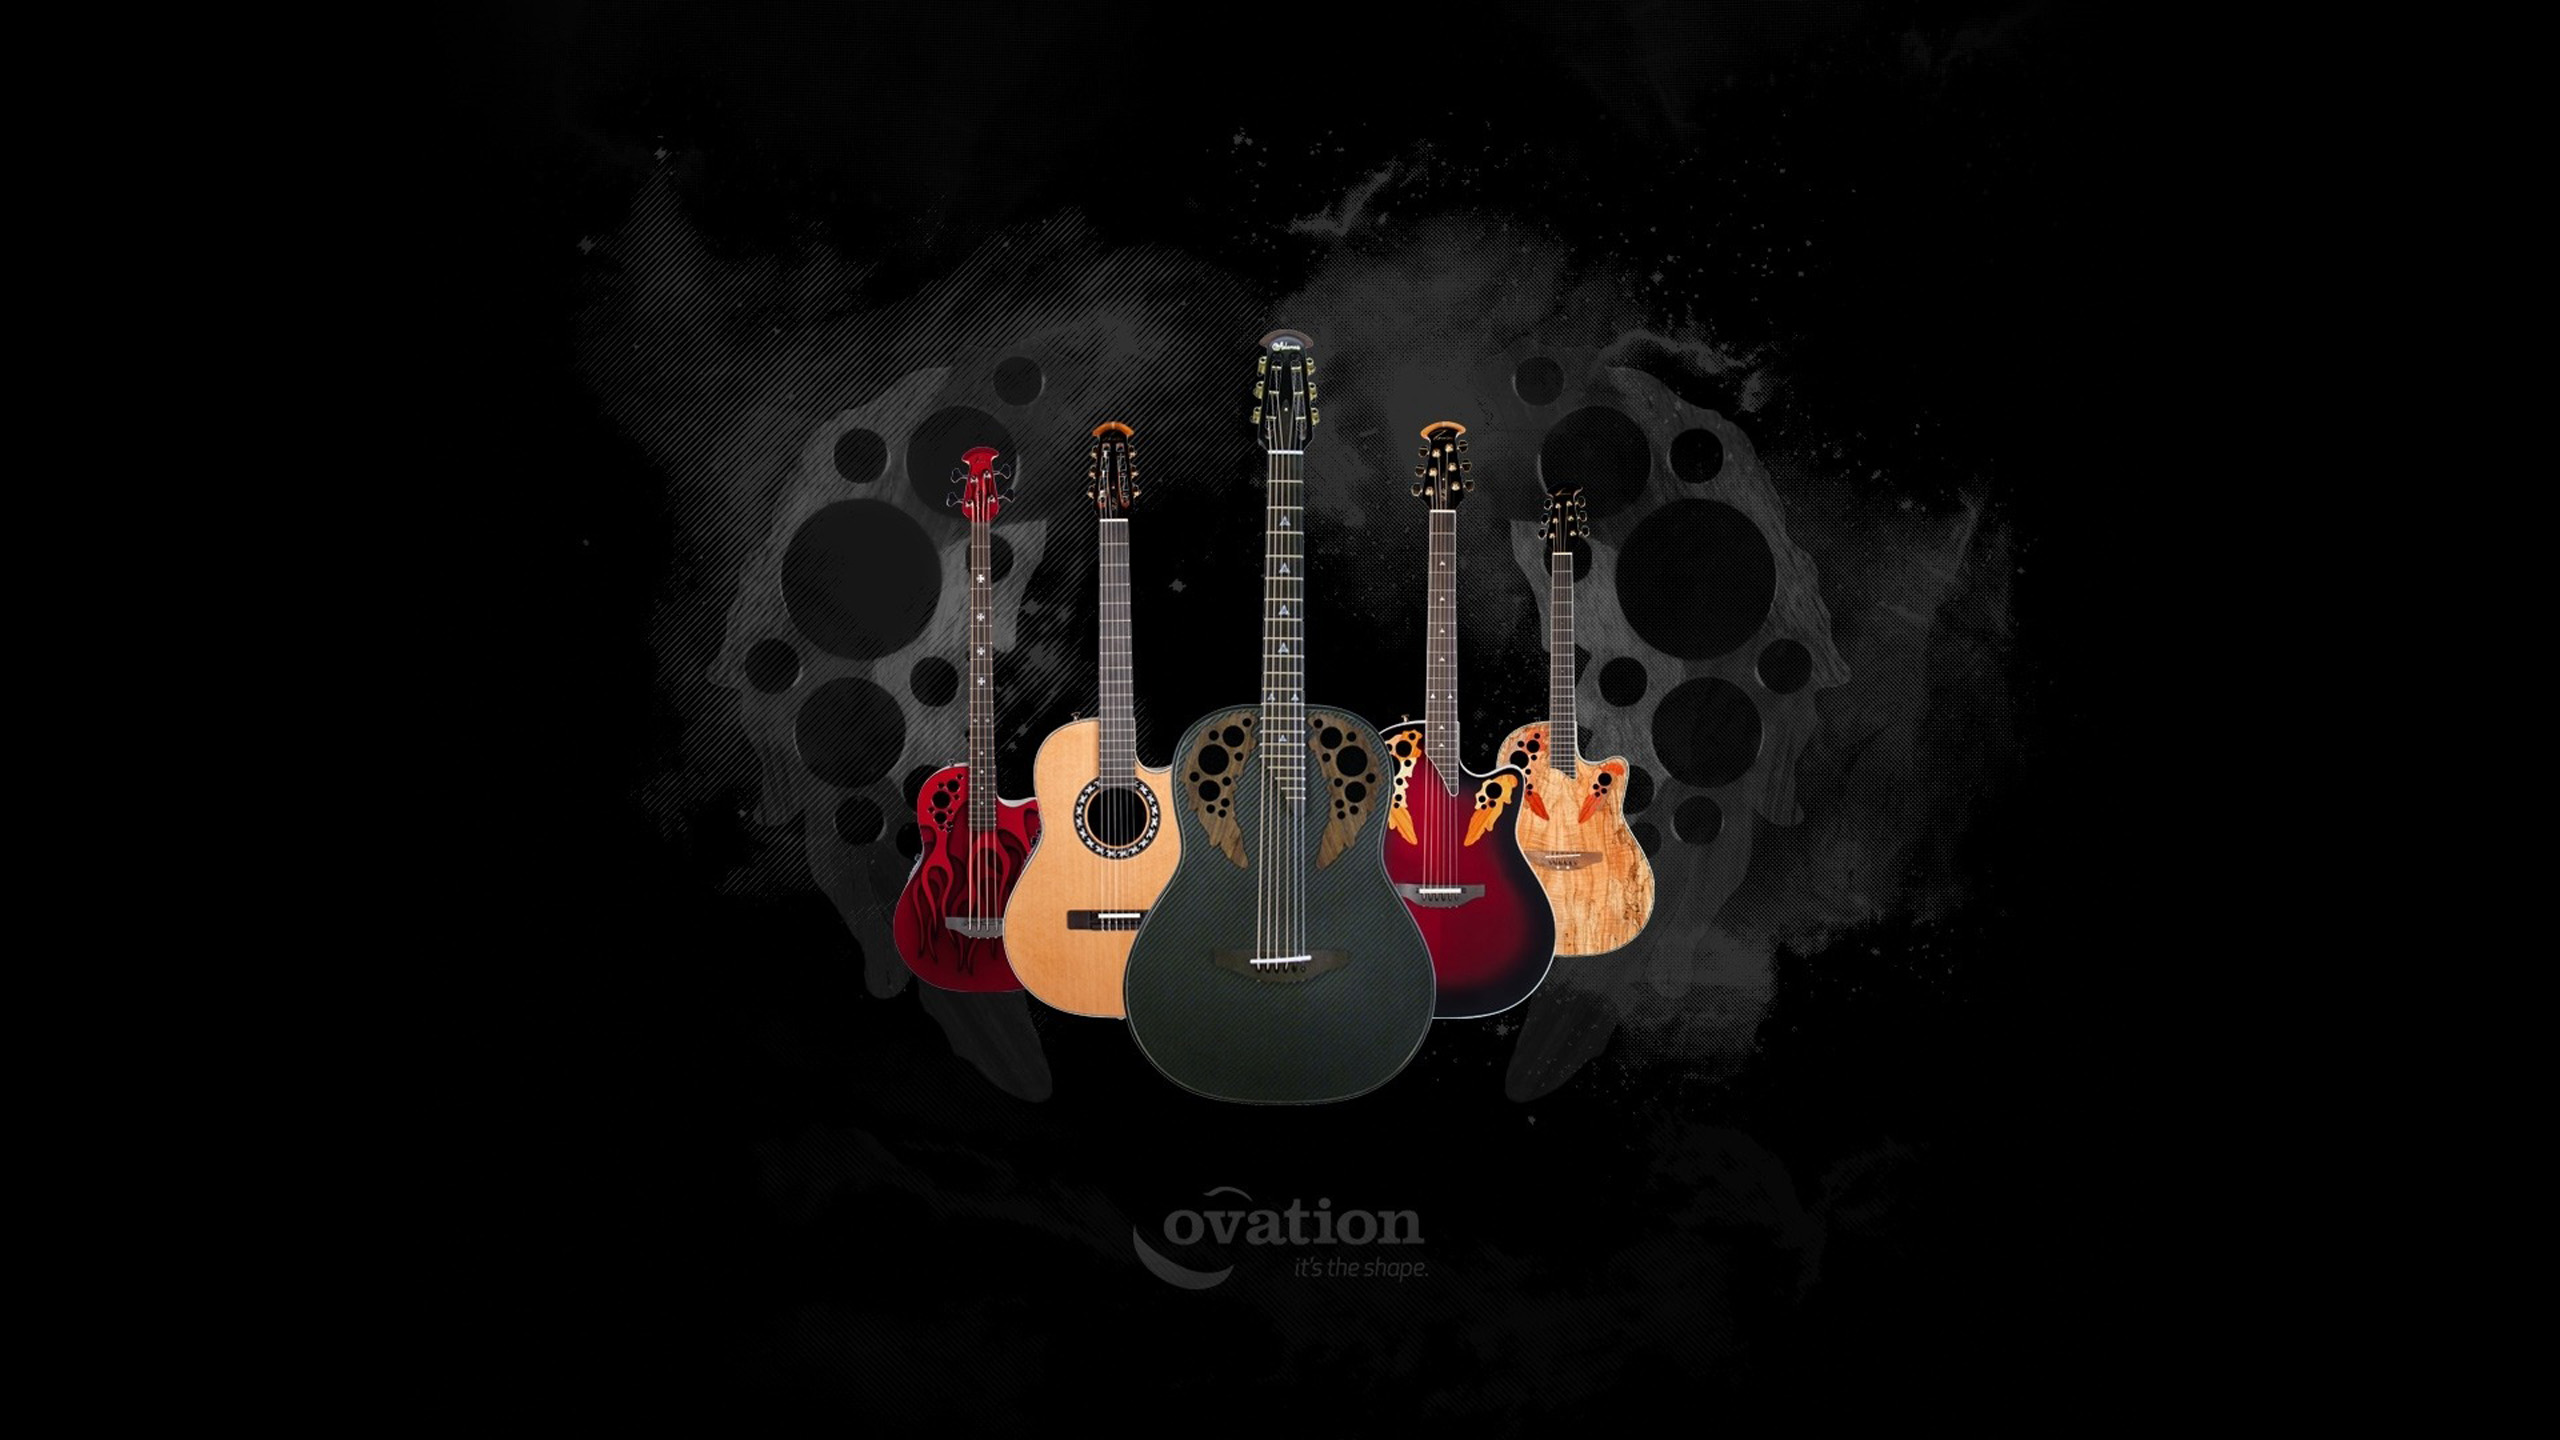 Ovation Guitars Full HD Wallpaper And Background Image